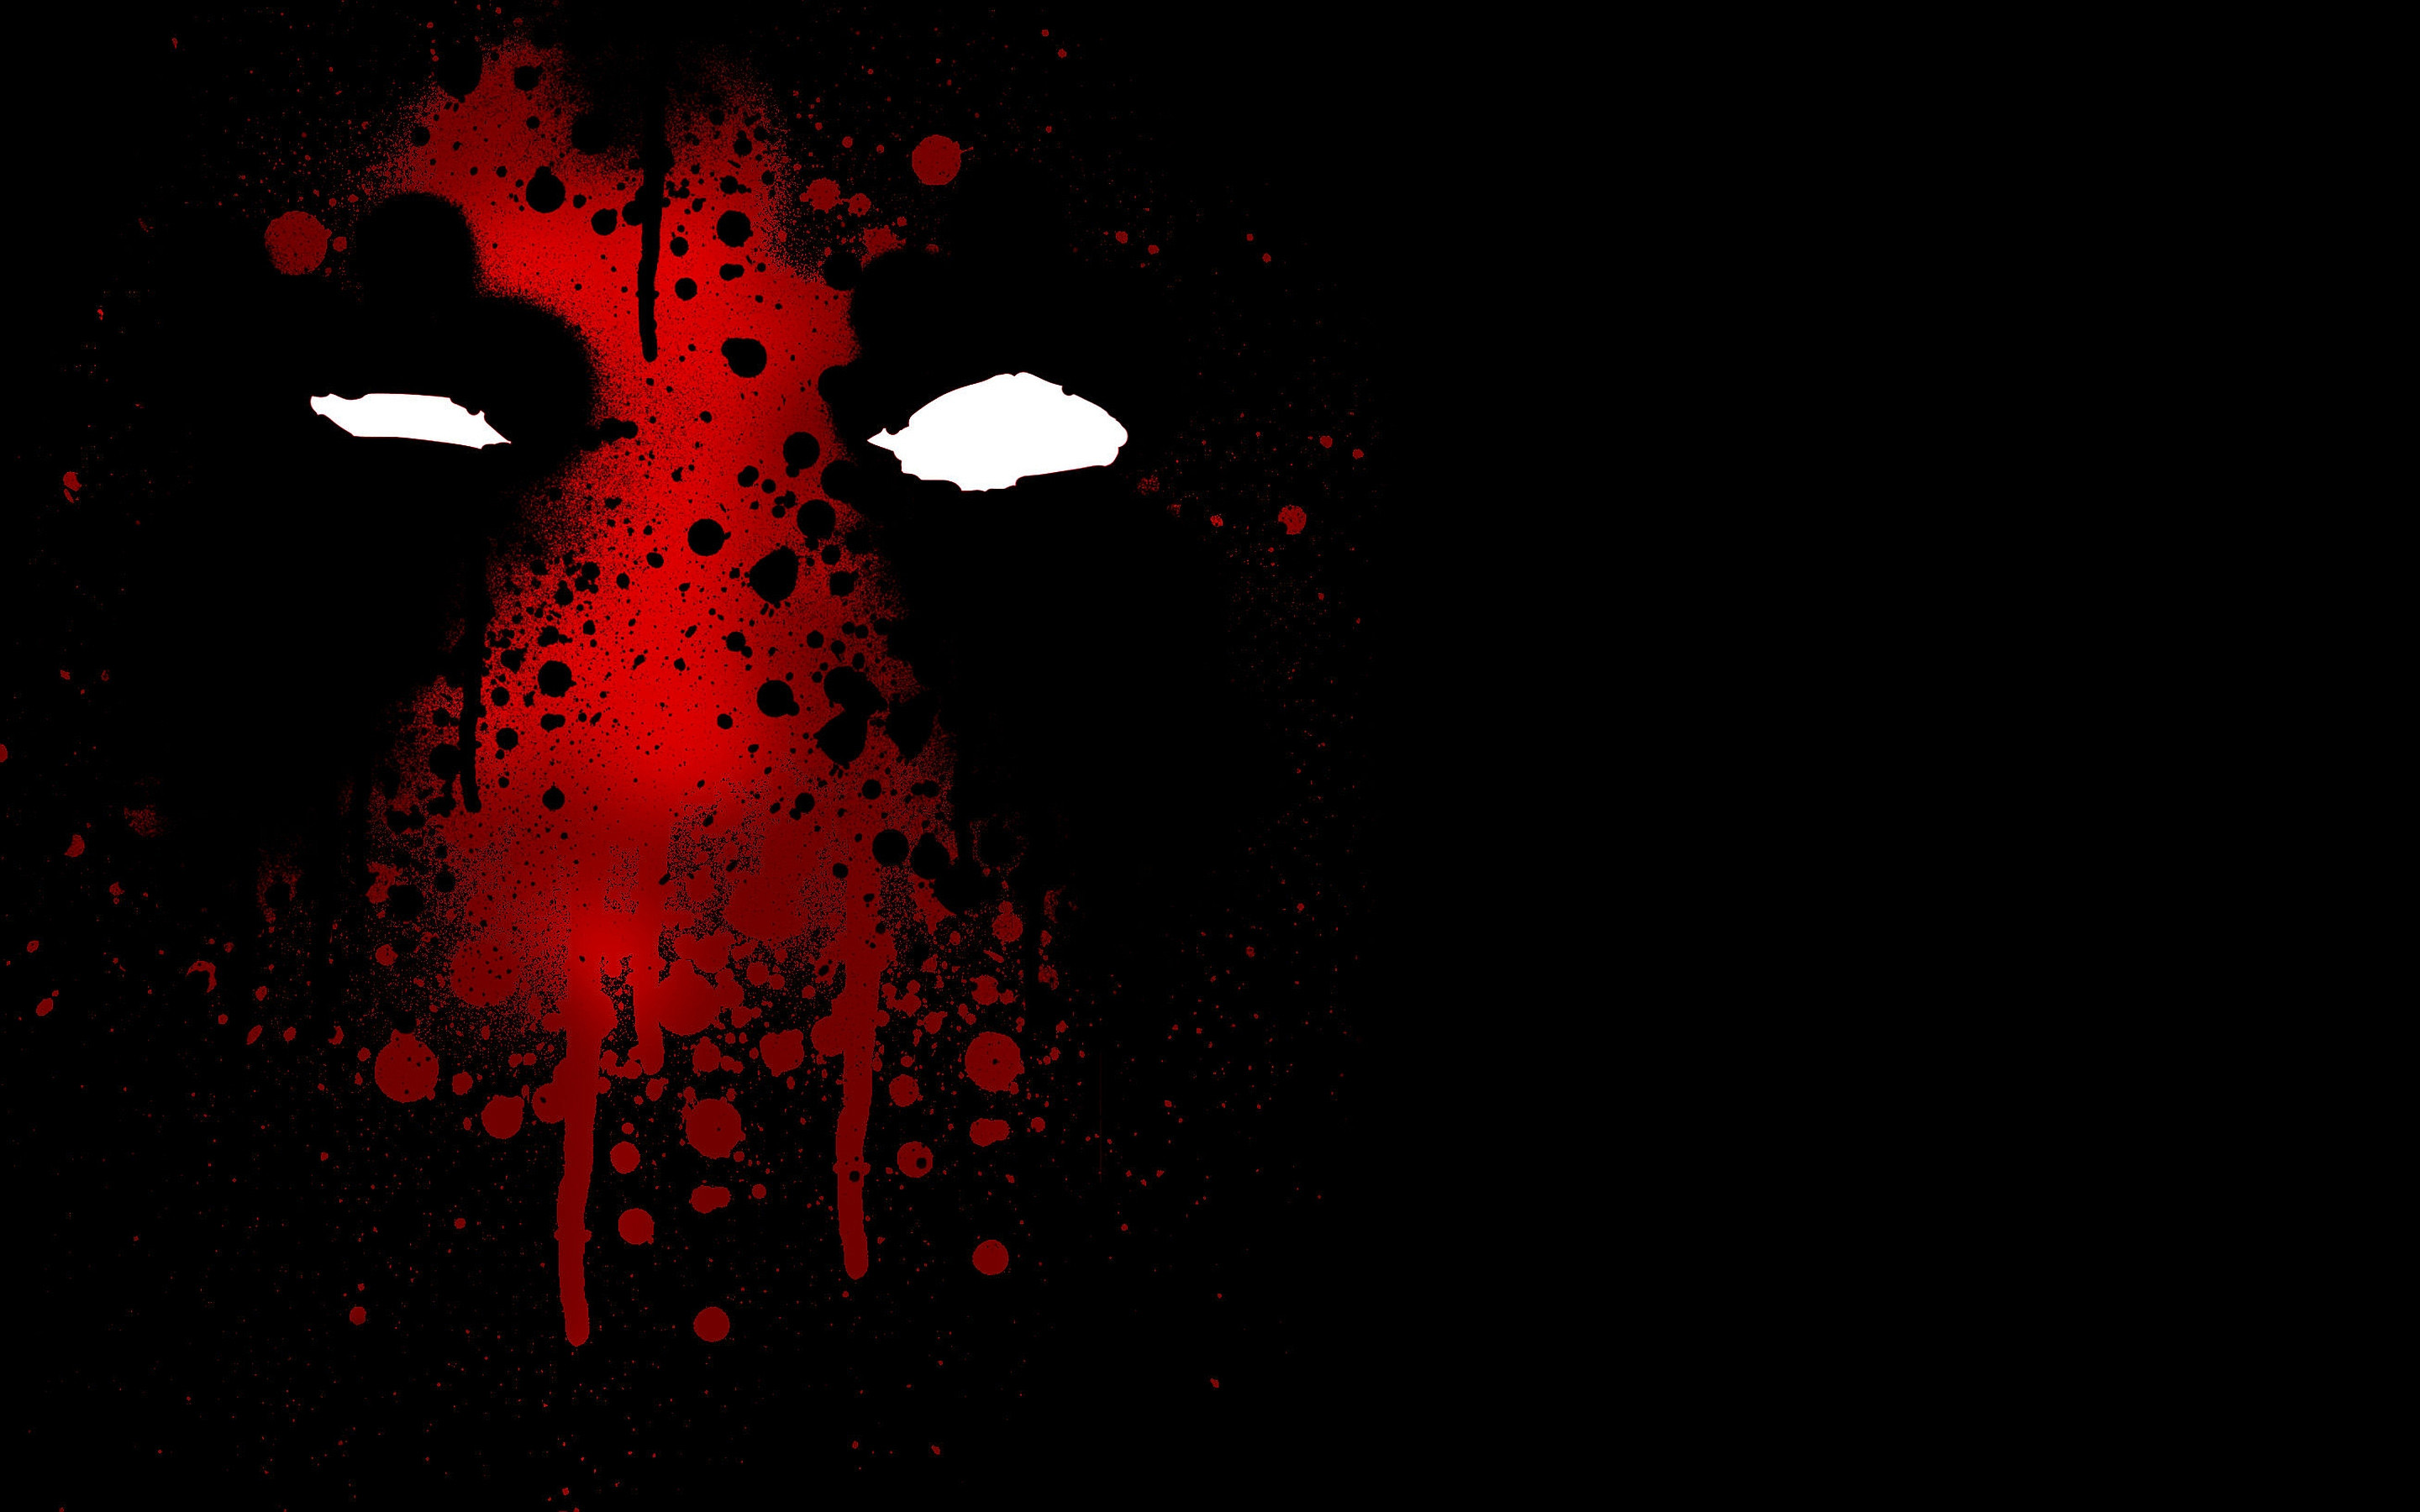 November 9 2015 By Stephen Comments Off on Deadpool Movie Wallpaper 2880x1800